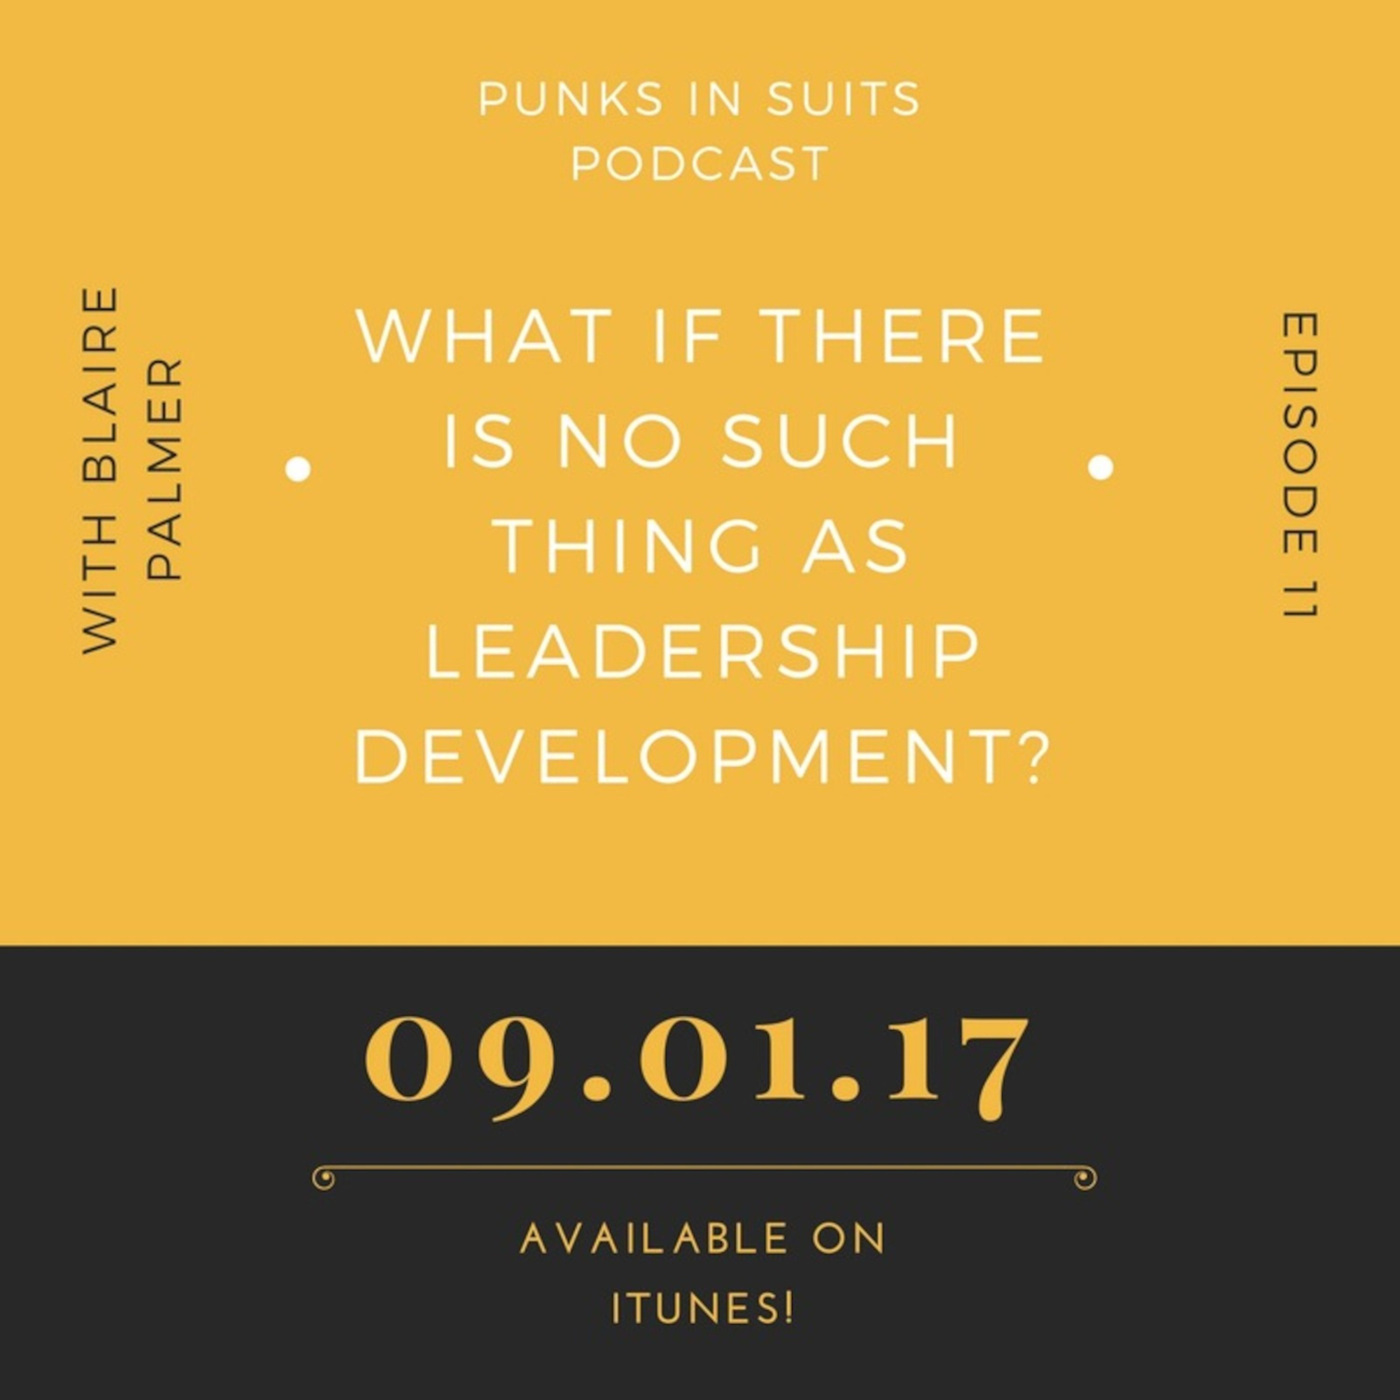 Episode 11: What if there is no such thing as leadership development?